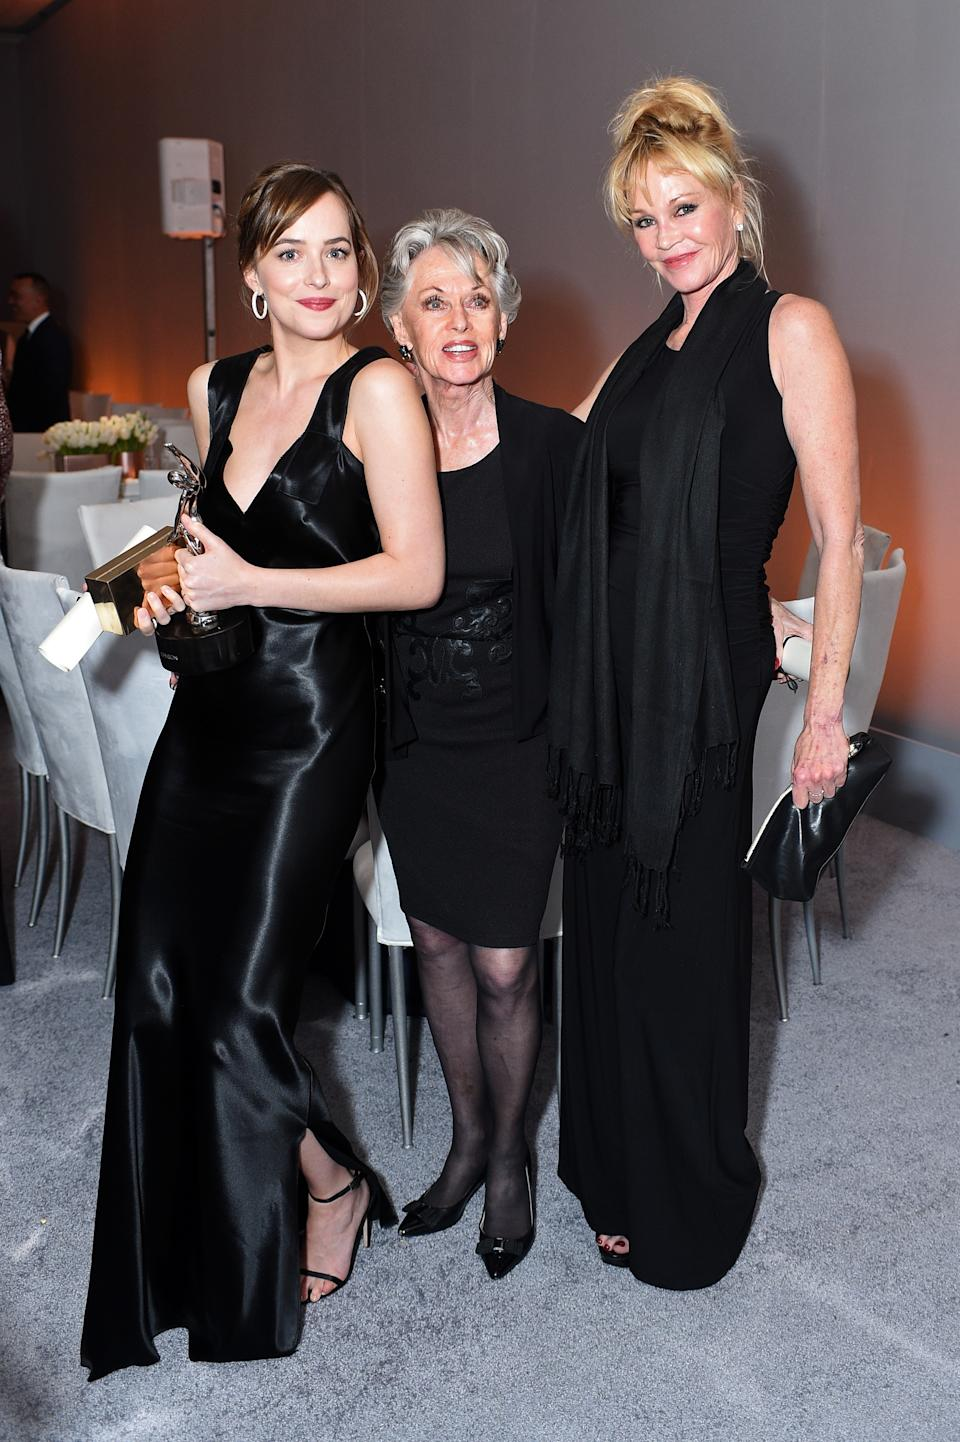 LOS ANGELES, CA - OCTOBER 19: (L-R) Actors Dakota Johnson, Tippi Hedren and Melanie Griffith pose with the Calvin Klein Emerging Star Award during the 22nd Annual ELLE Women in Hollywood Awards presented by Calvin Klein Collection, L'Oréal Paris, and David Yurman at the Four Seasons Los Angeles at Beverly Hills on October 19, 2015 in Beverly Hills, California.  (Photo by Stefanie Keenan/Getty Images for ELLE)